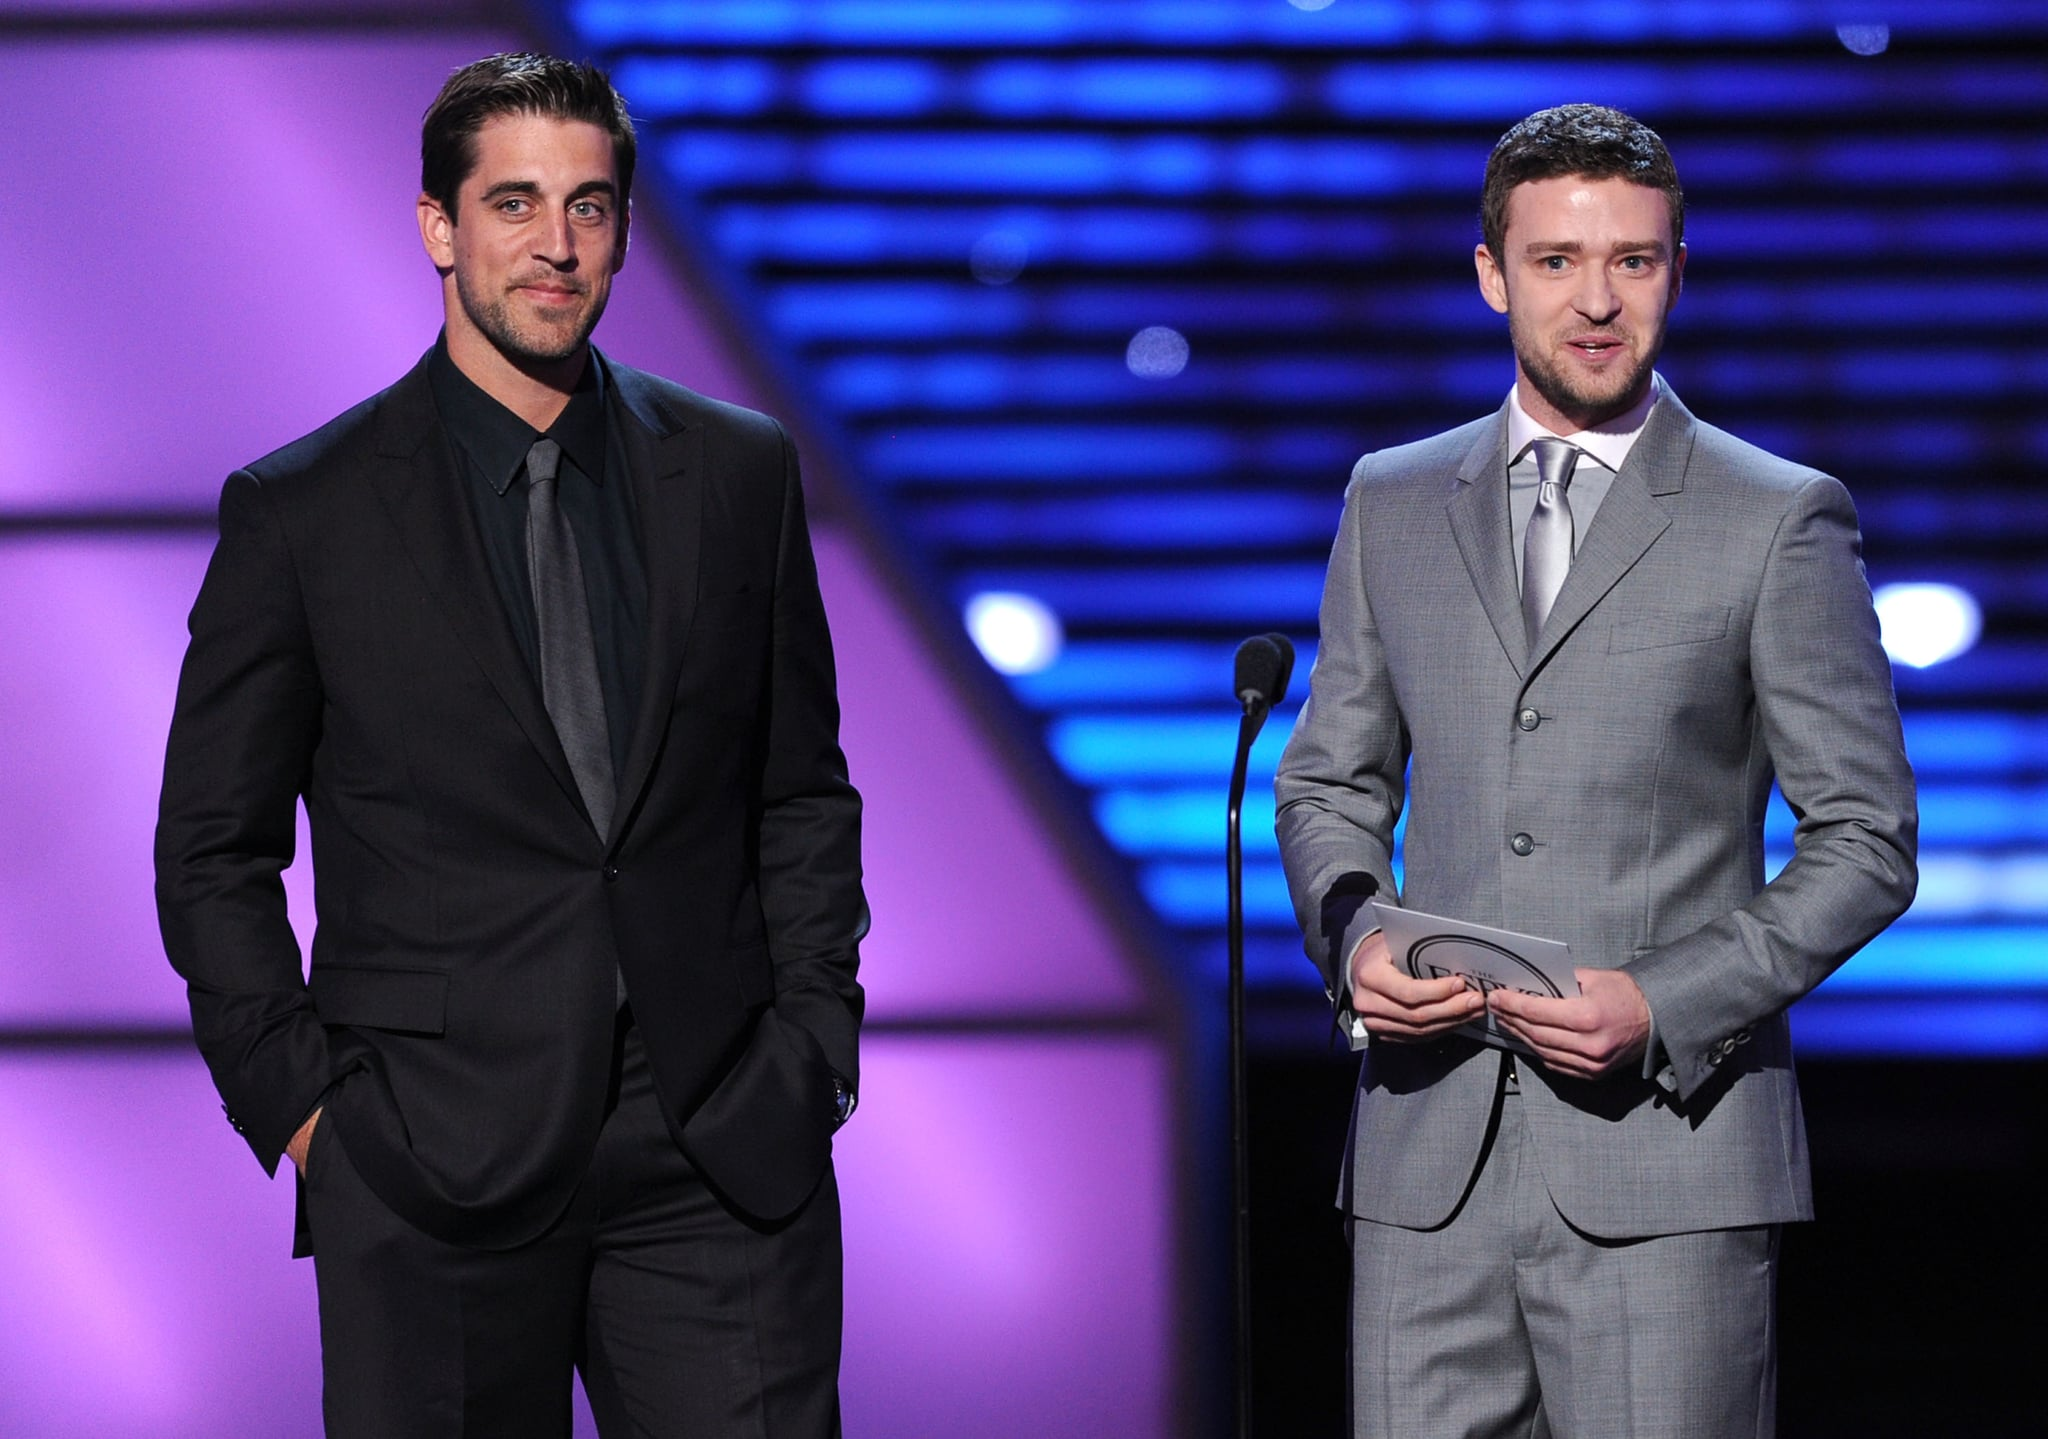 Aaron Rodgers and Justin Timberlake